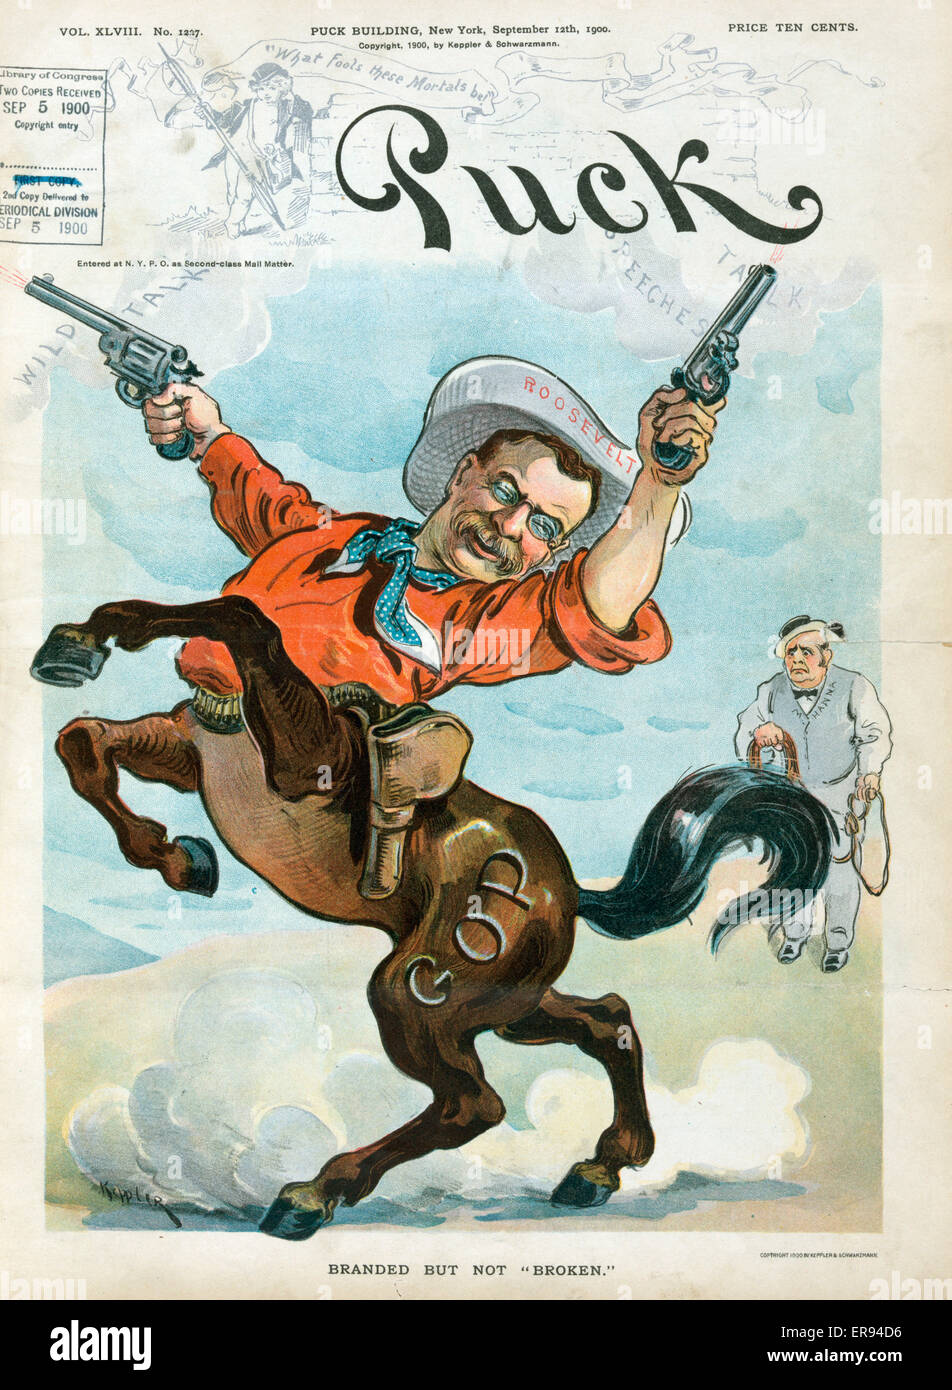 Branded but not broken. Illustration shows Theodore Roosevelt as a wild centaur or bucking bronco firing two handguns - Stock Image